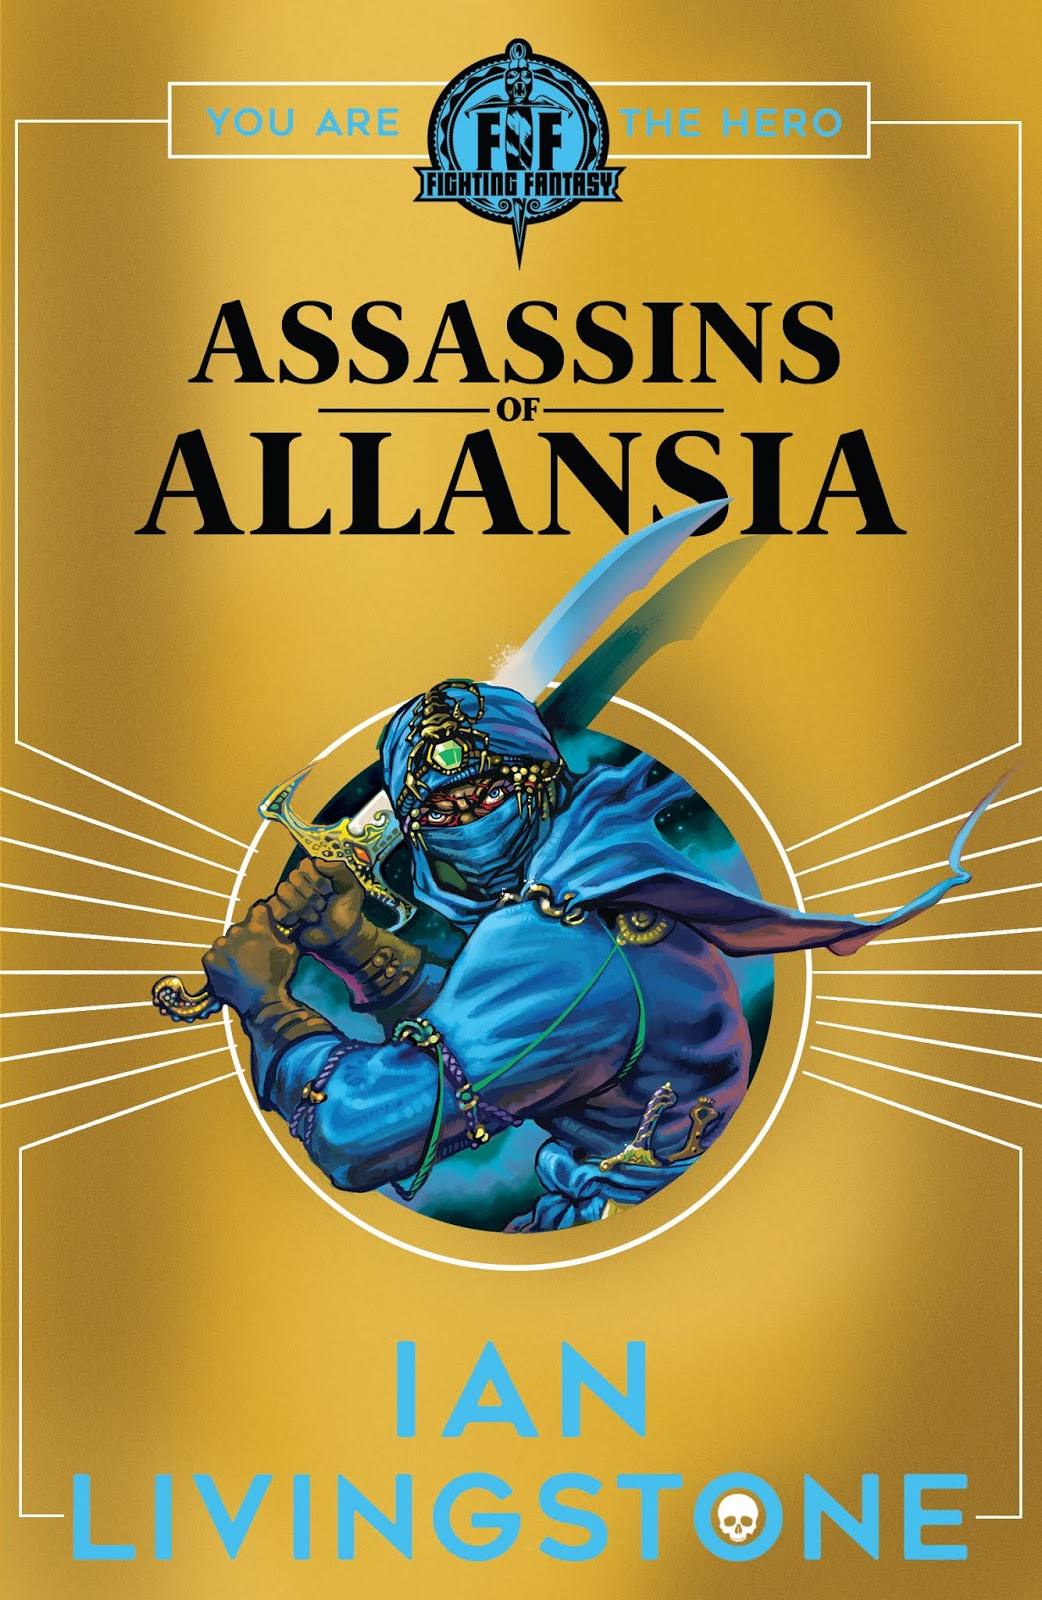 [Image: Assassins%2Bof%2BAllansia%2BCVR.jpg]